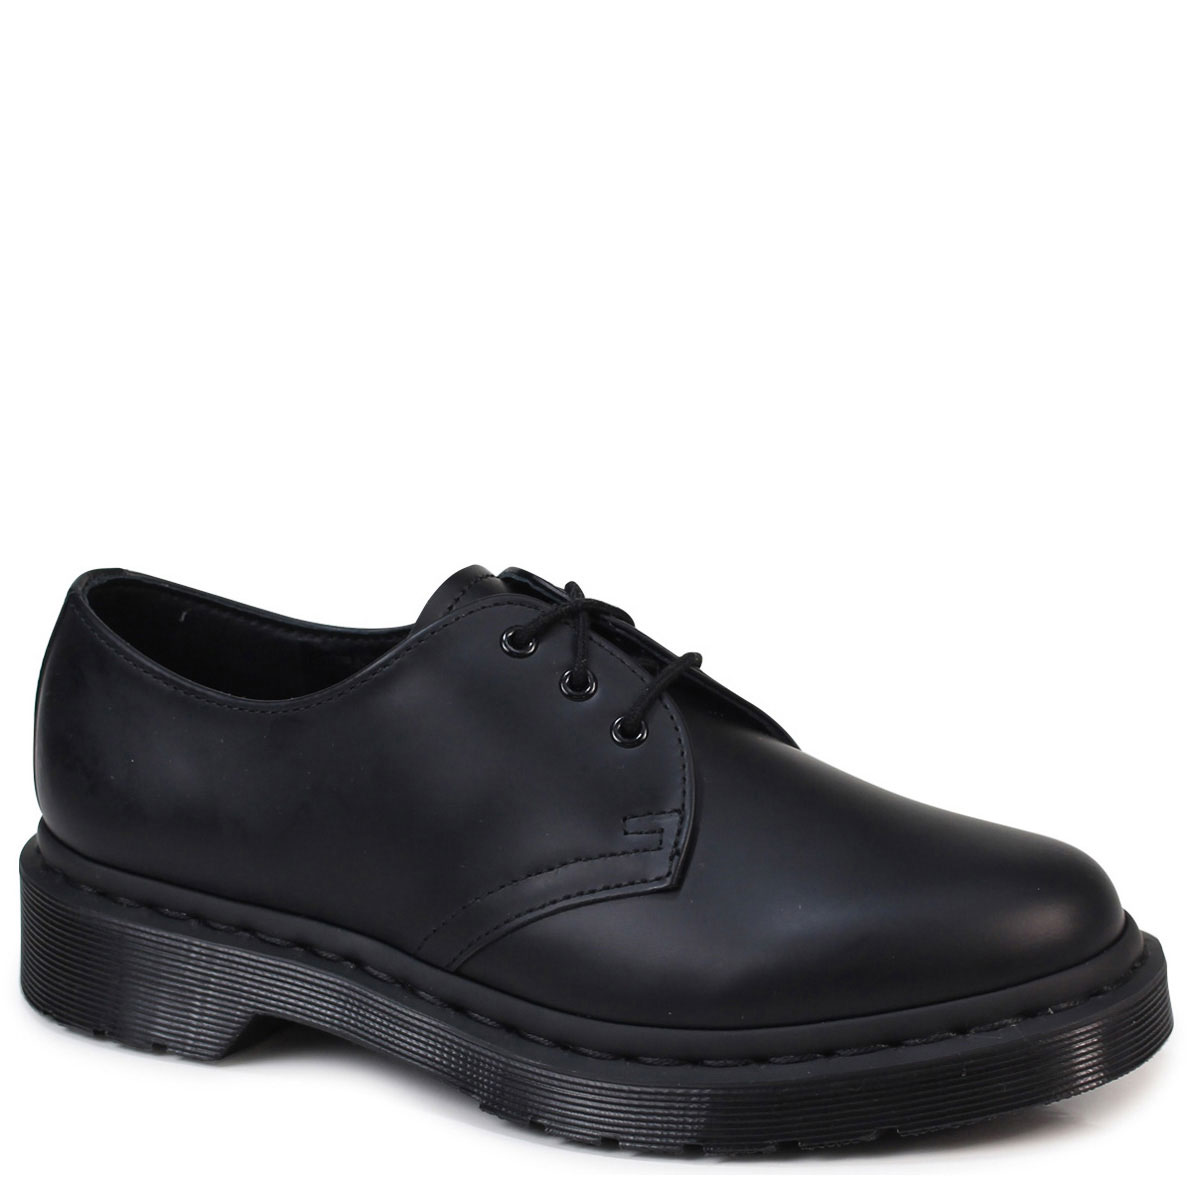 Dr.Martens and☆ 1461 MONO/PART OF THE CORE COLLECTION ☆